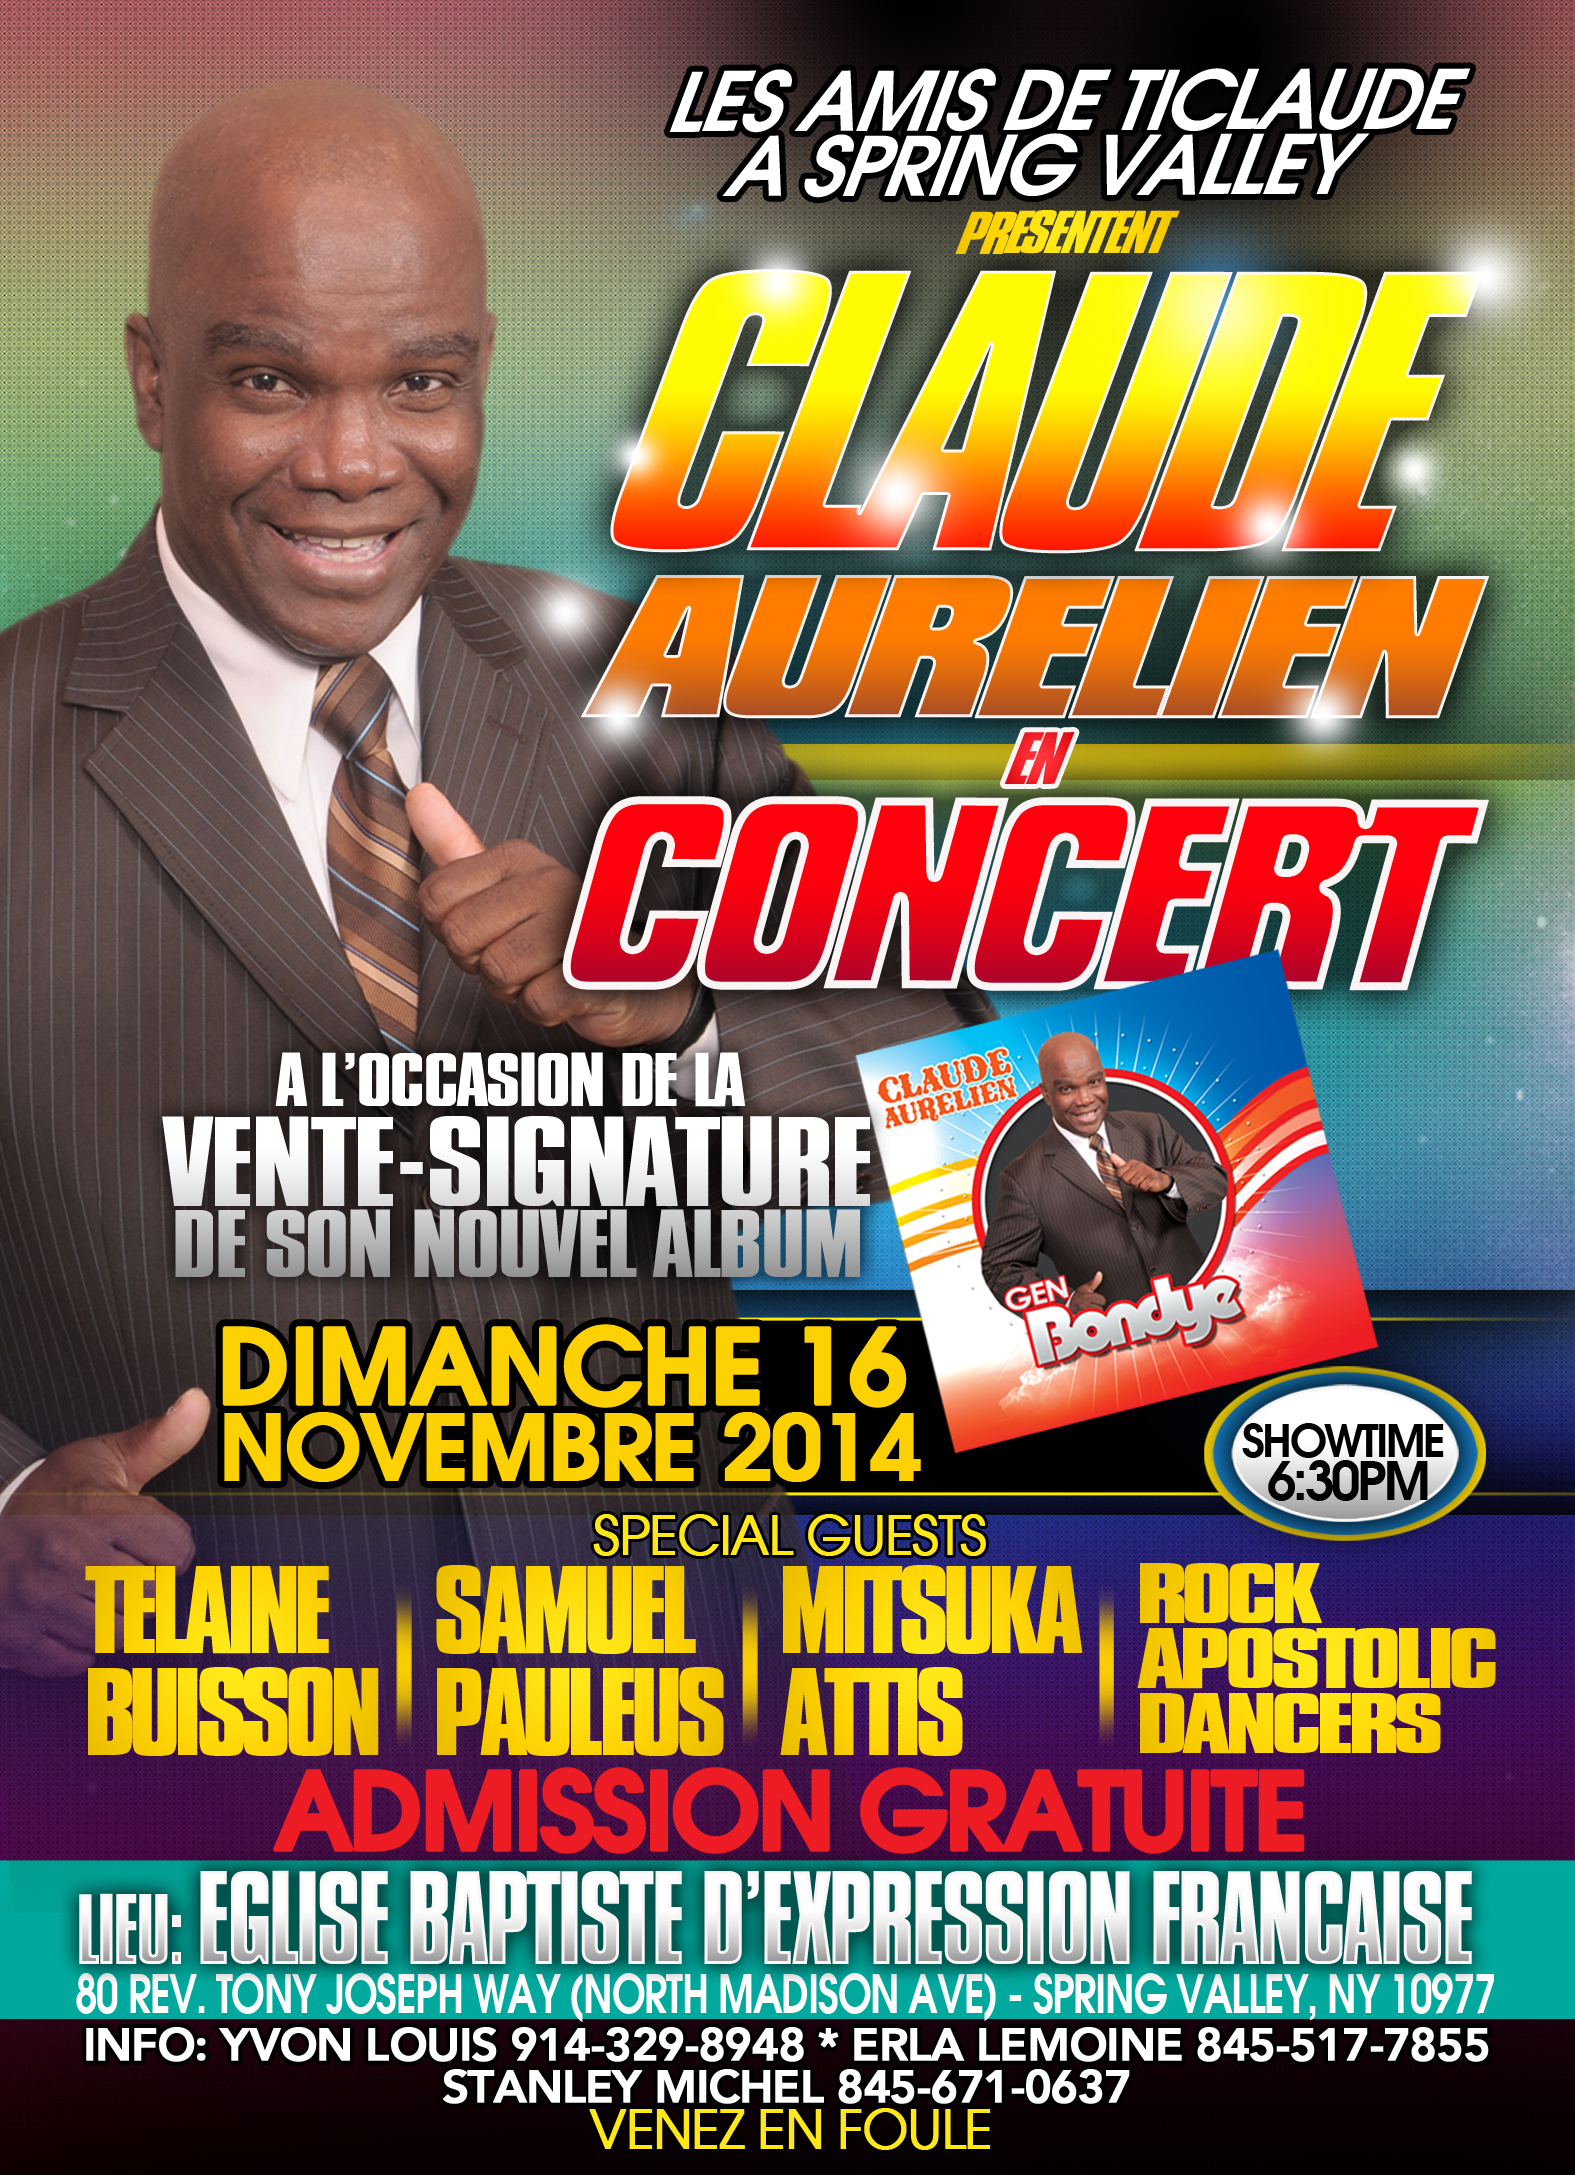 Claude Aurelien Live in Concert in Spring Valley NY Sunday November 16 2014 Event